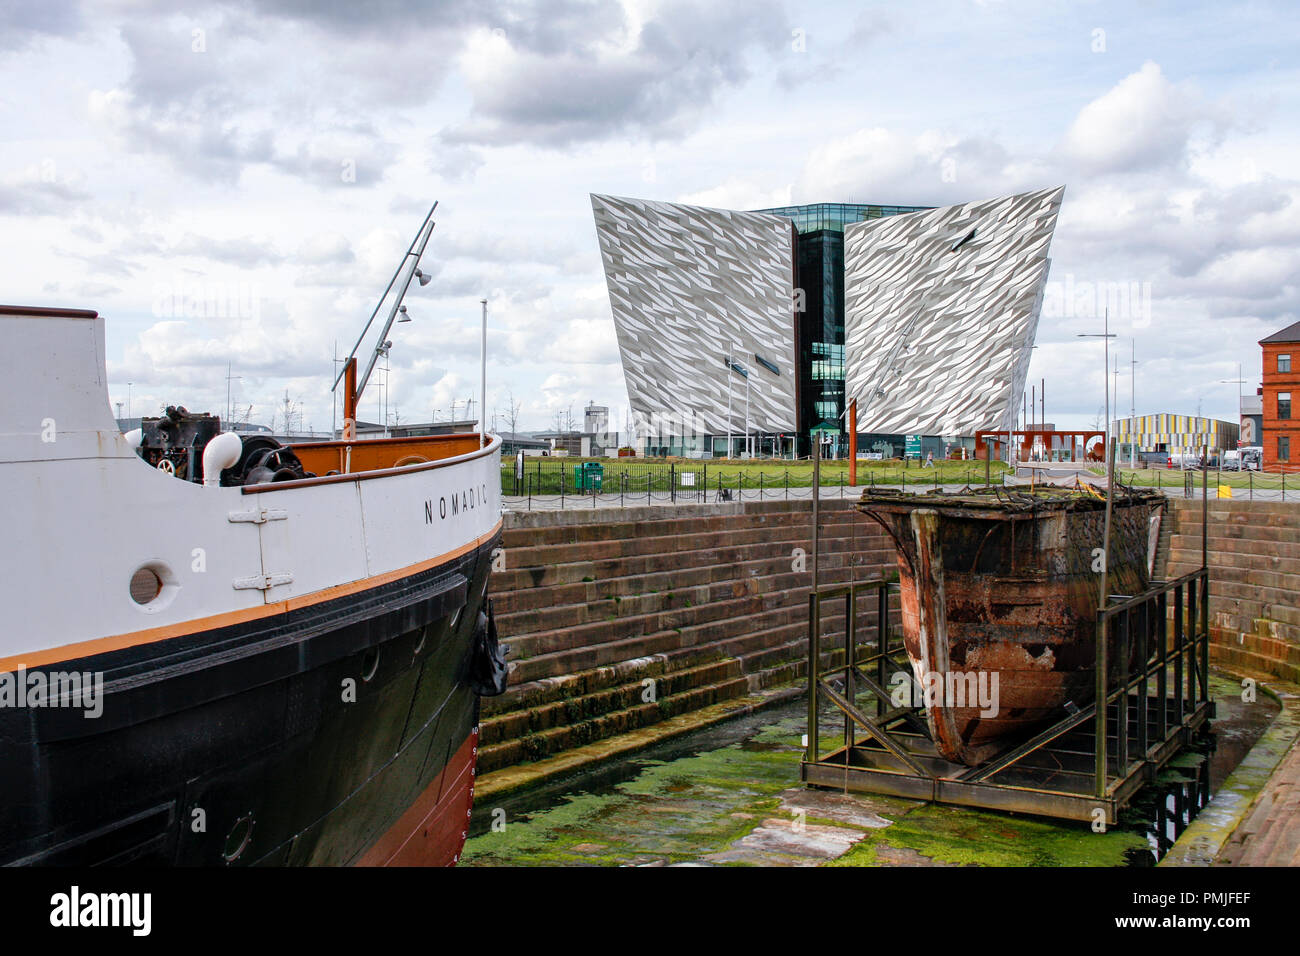 SS Nomadic, the last remaining ship of the White Star Line and the Titanic Belfast museum in the Titanic Quarter of Belfast, Northern Ireland. - Stock Image